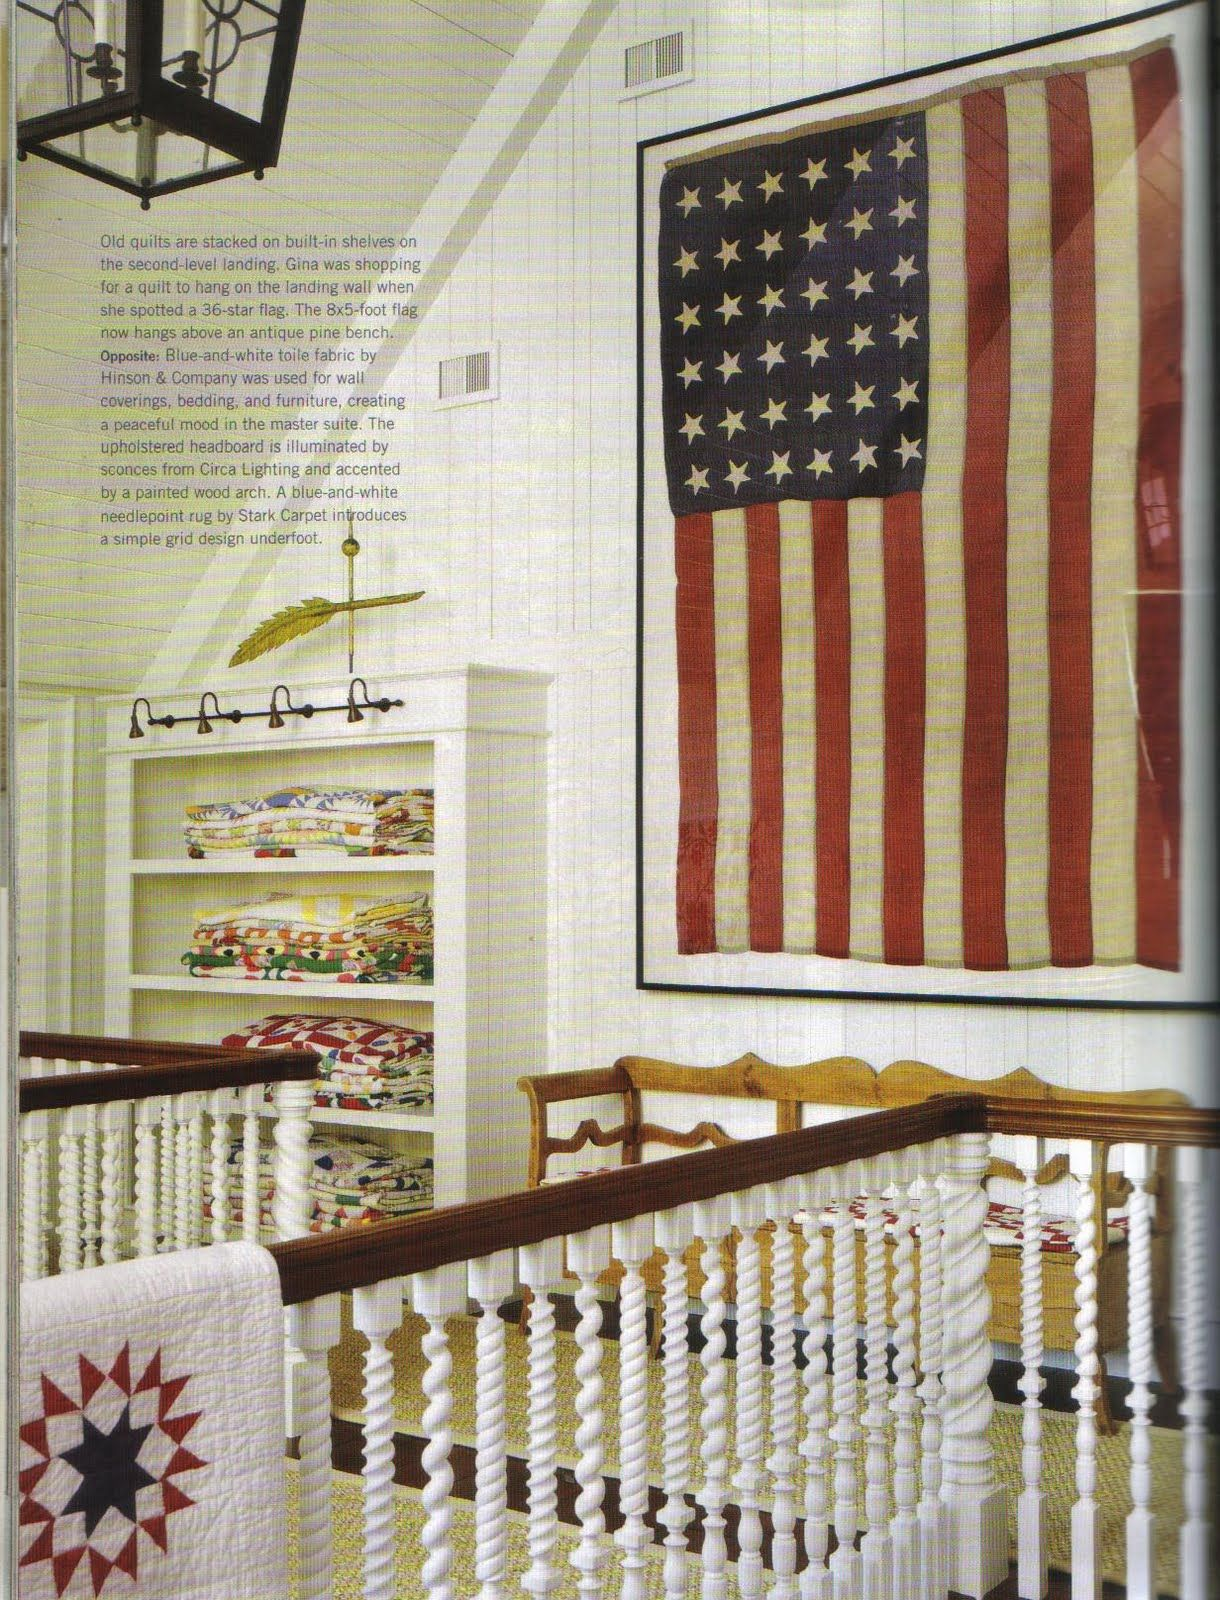 My husband has an old flag, great idea for july 4th decor | Flags ...